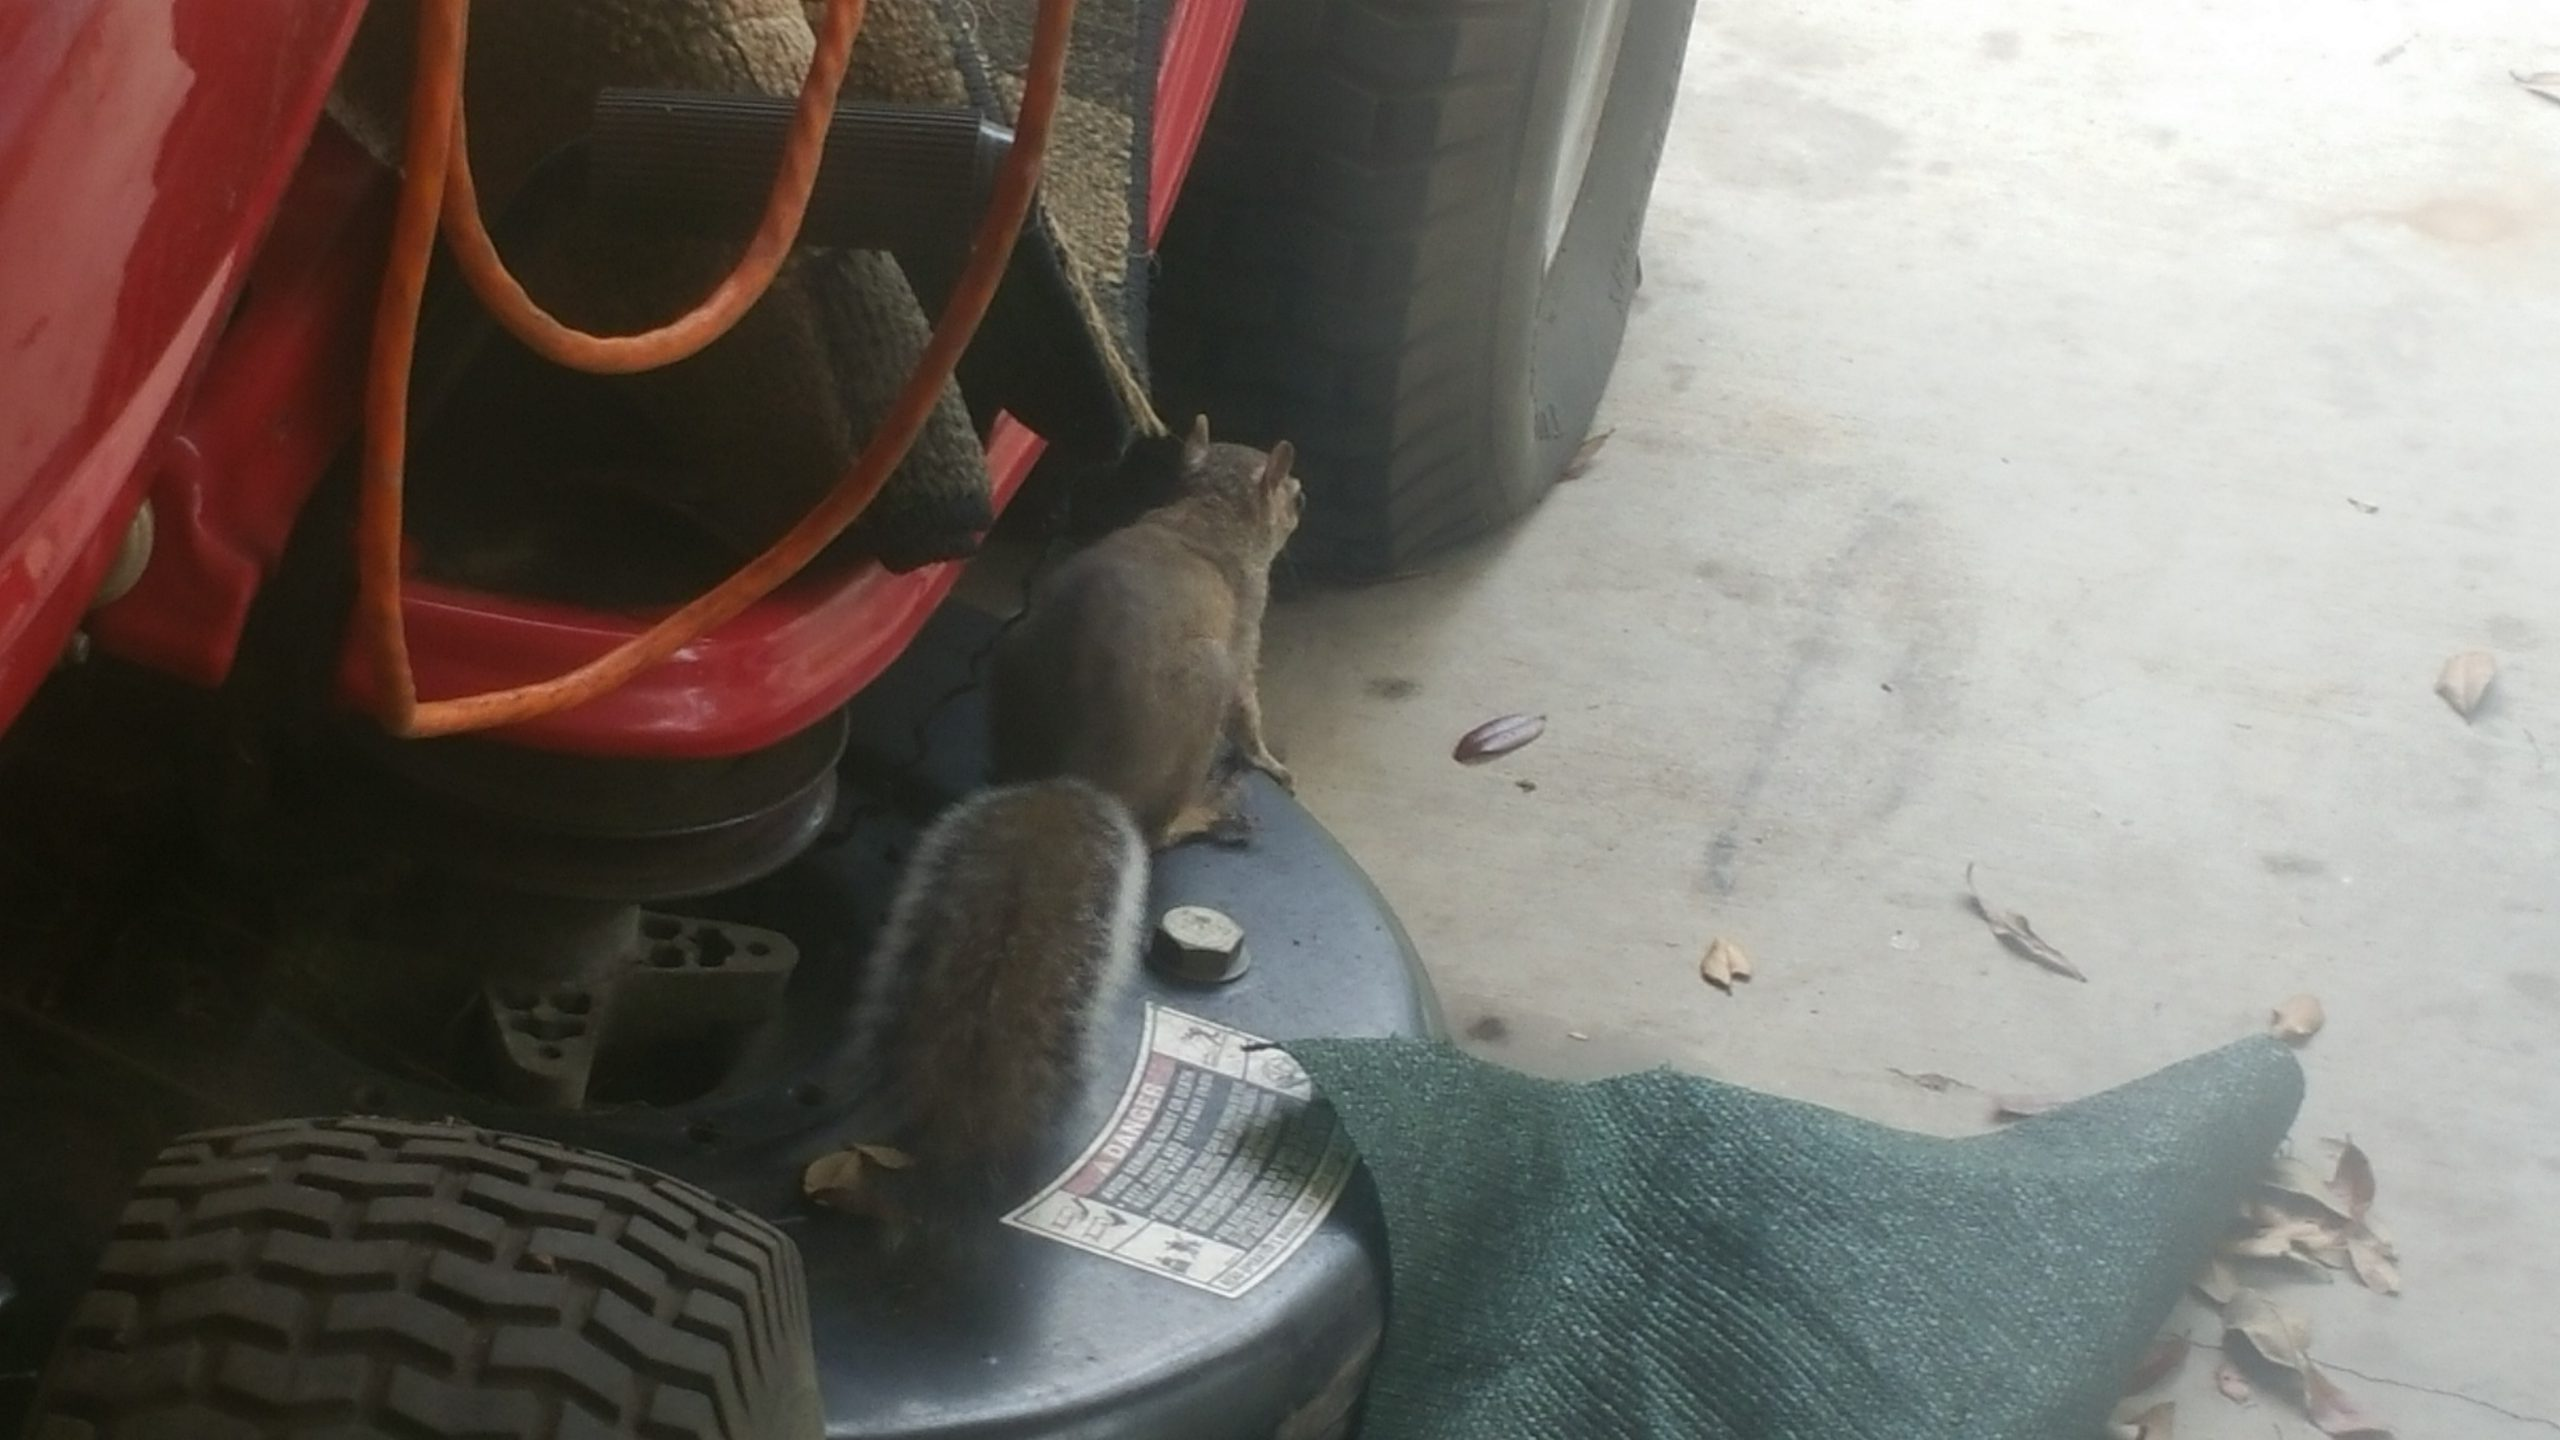 Squirrel - Feb 11, 2018 - 15